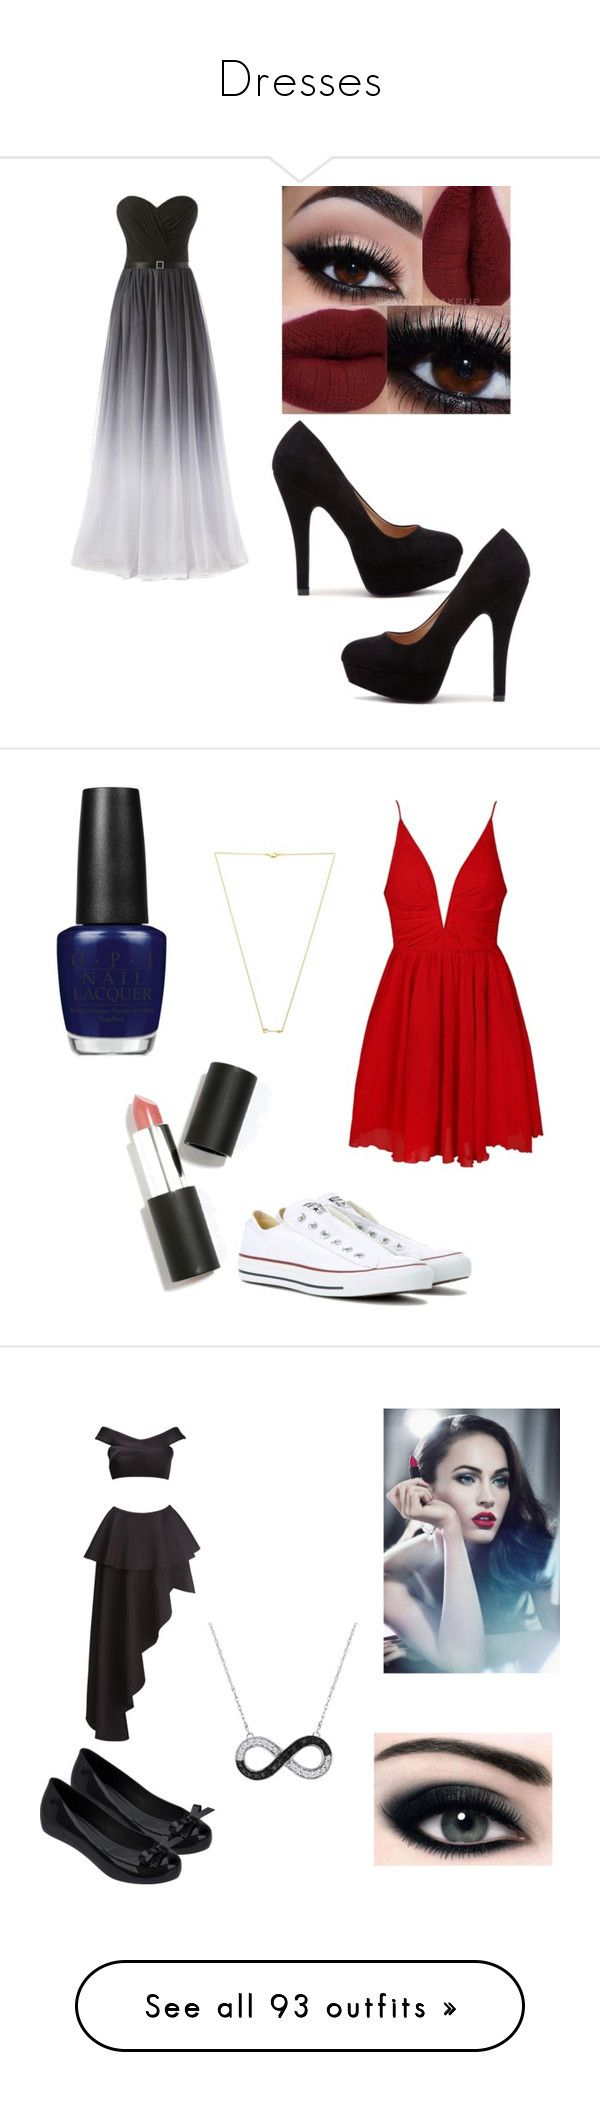 """Dresses"" by basic-penguin-girl on Polyvore featuring Ally Fashion, Converse, OPI, Sigma, Wanderlust + Co, Fame & Partners, Melissa, Giorgio Armani, LE3NO and NARS Cosmetics"